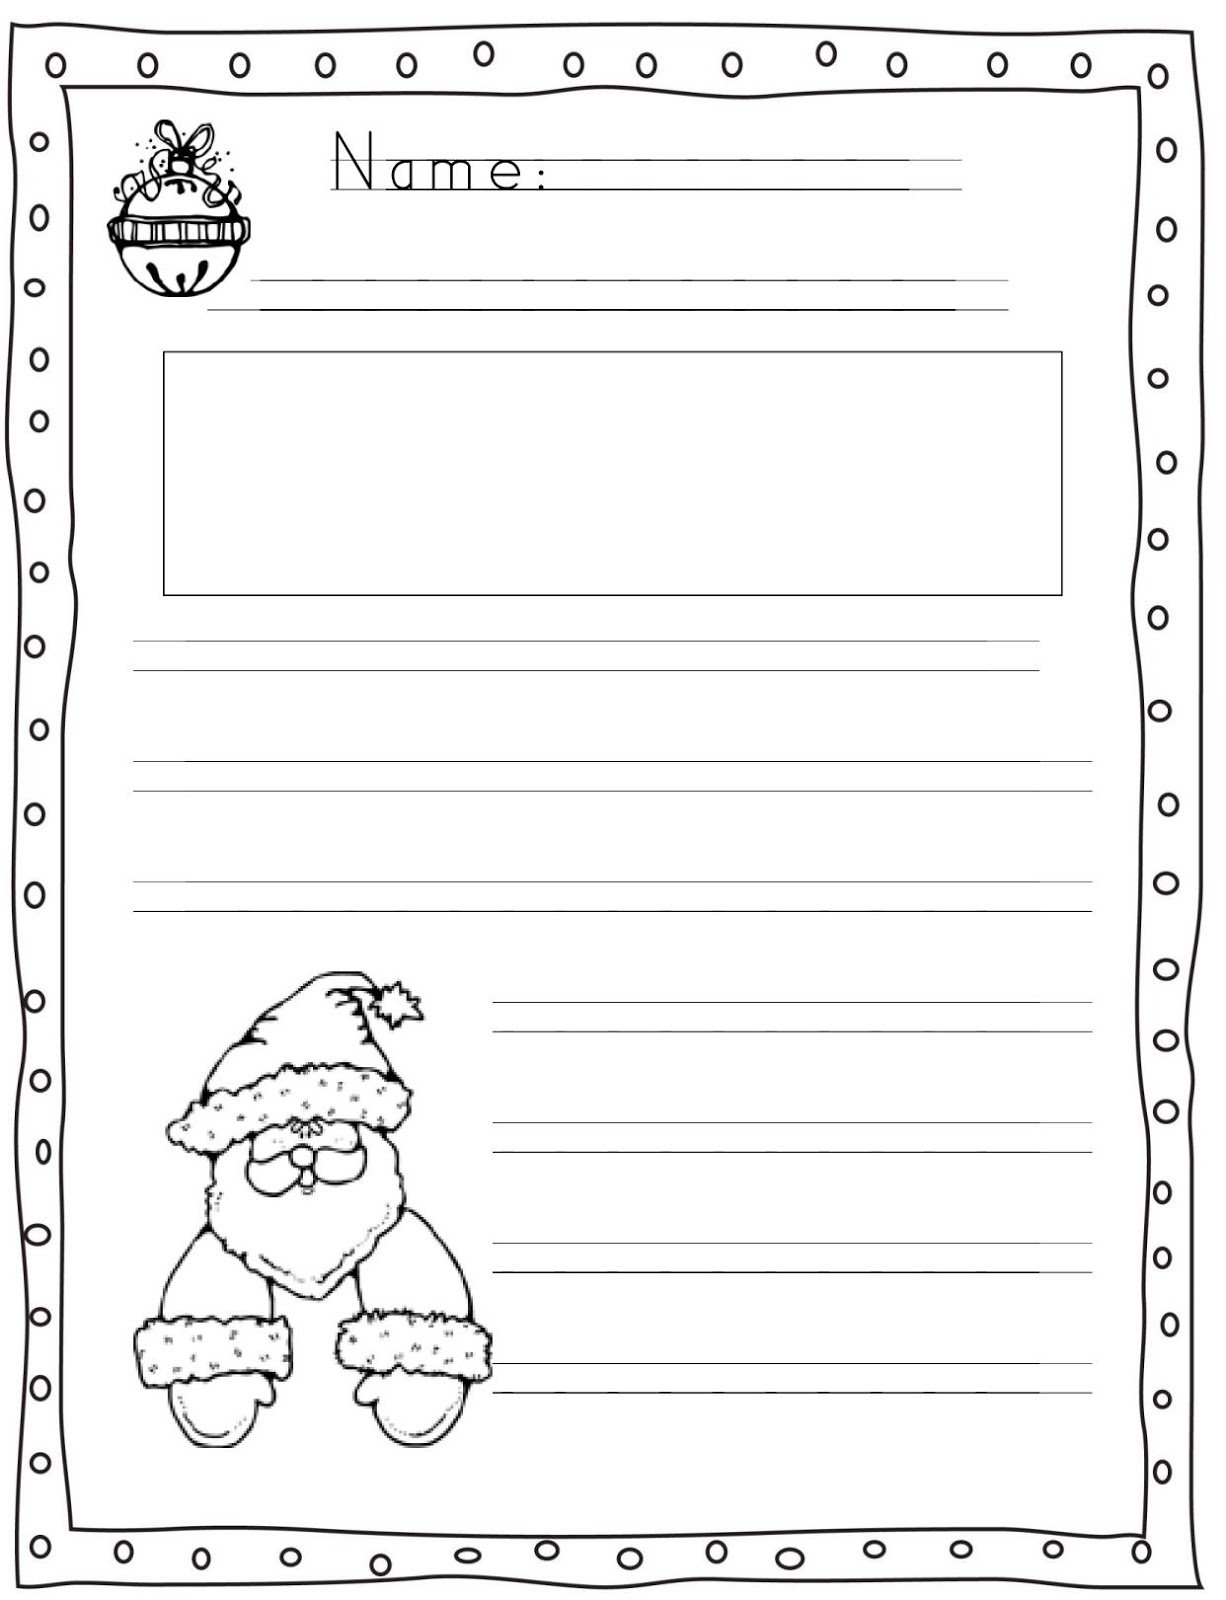 handwriting without tears letter templates - handwriting without tears worksheets printable free